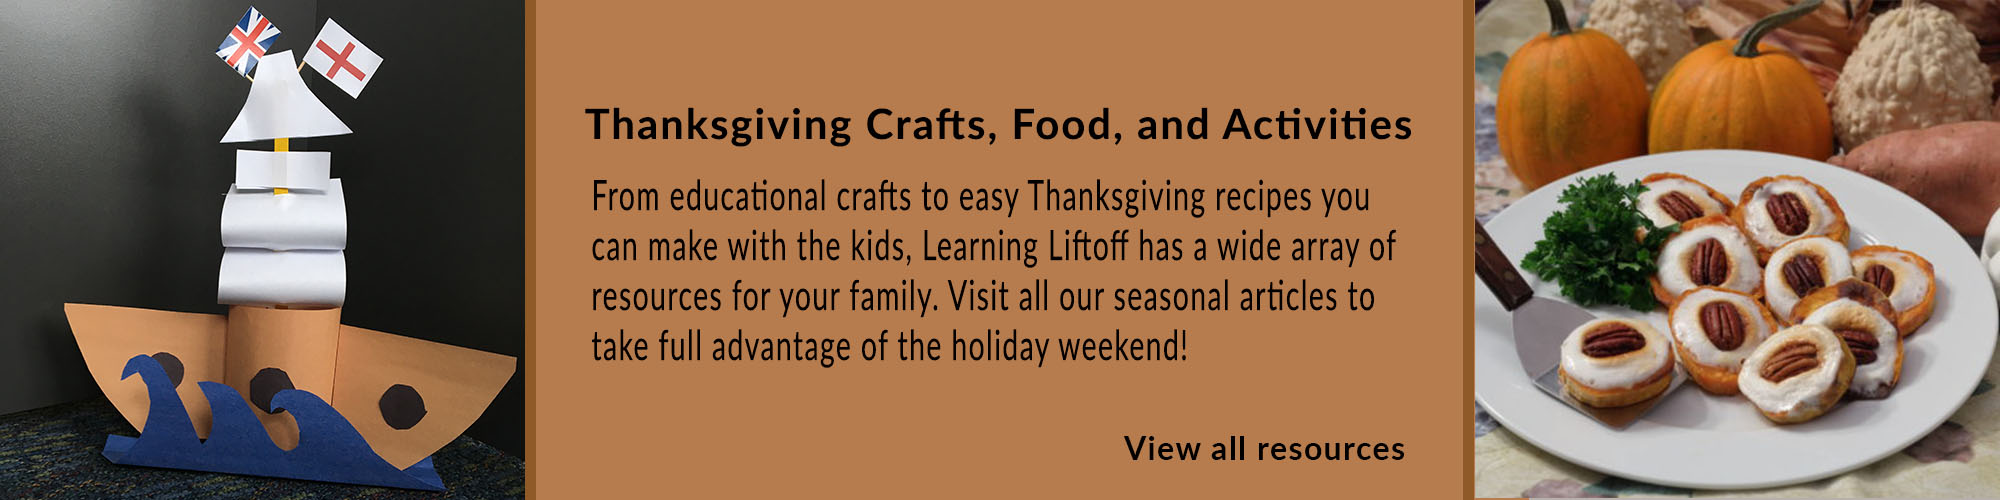 craft and food Thanksgiving Resources Promotion